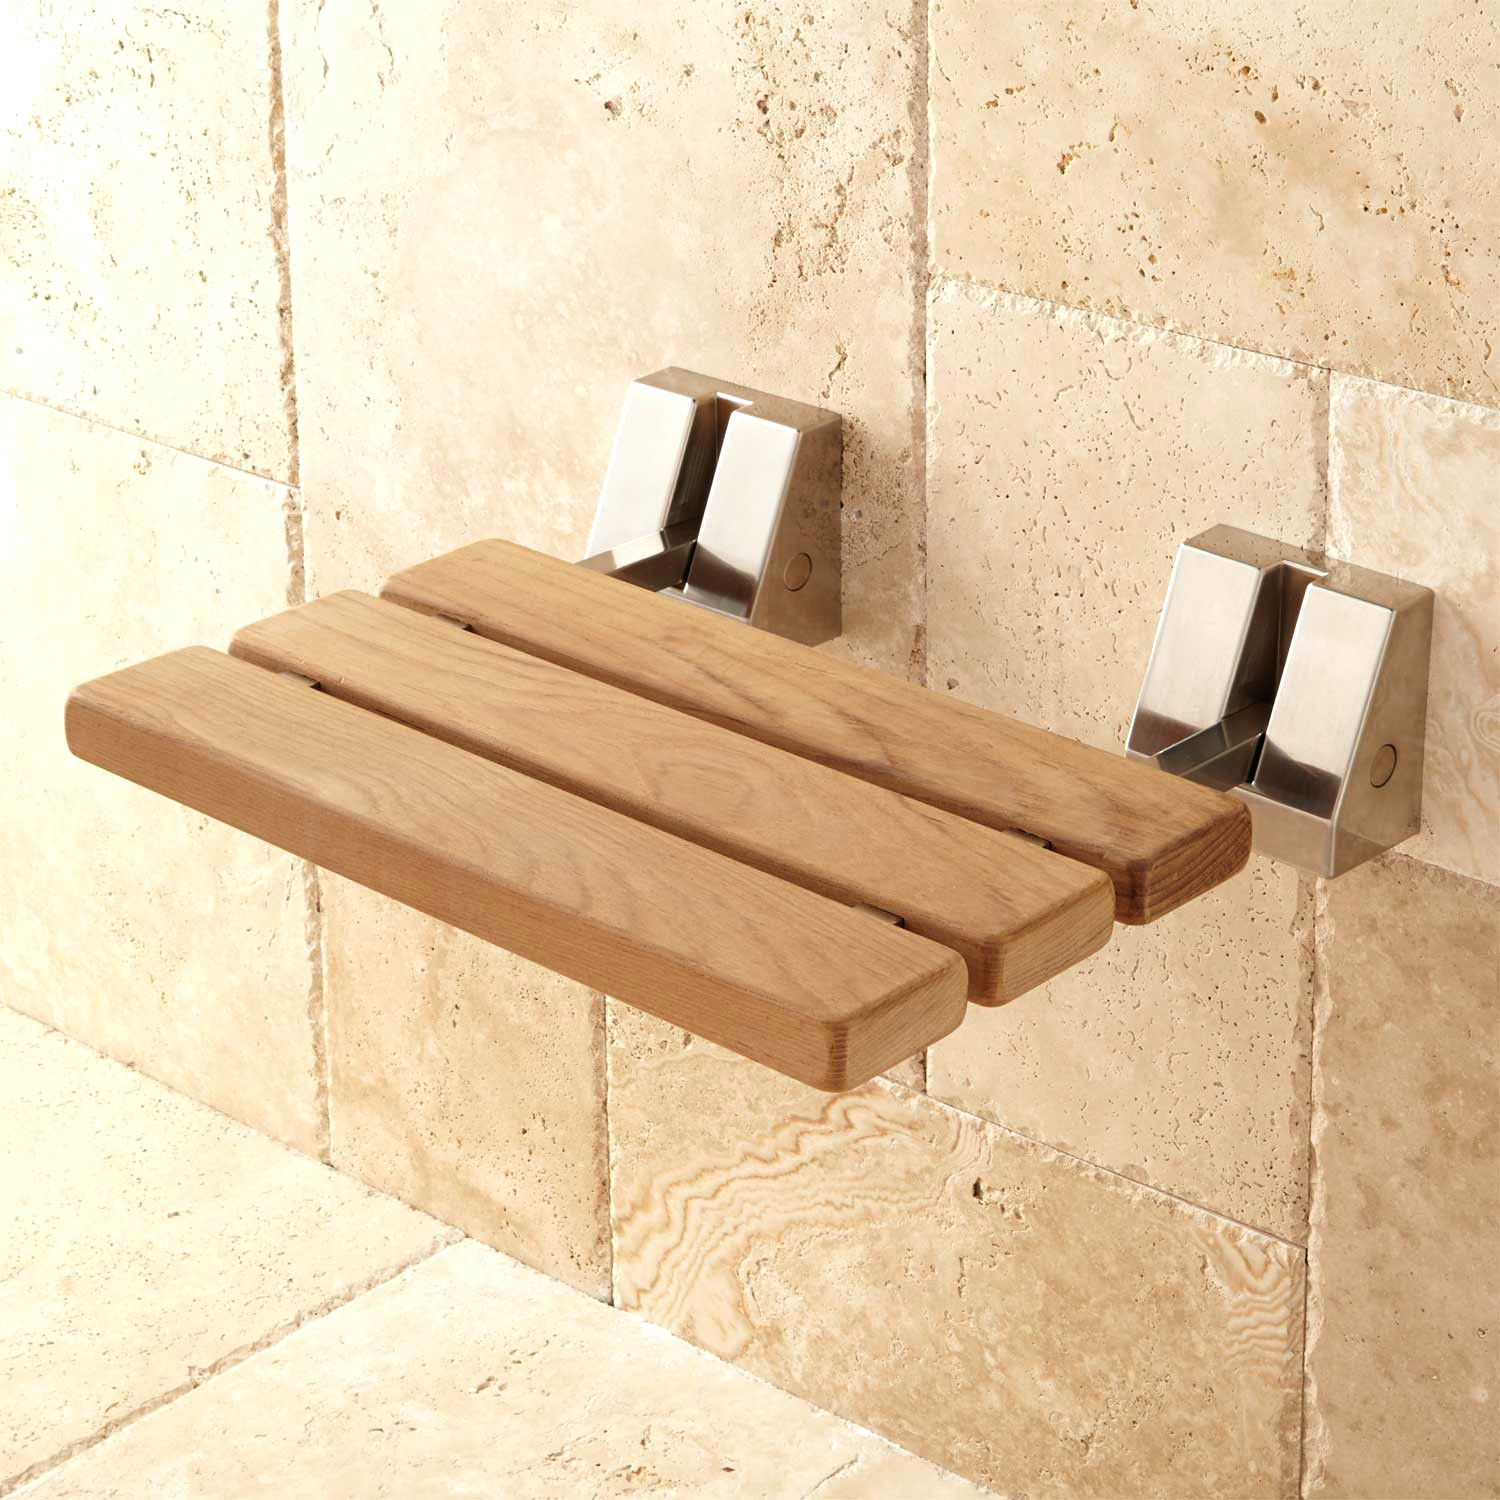 bathroom shower of waterproof teak with stools bath shelf wood bench and spa benches stool concept